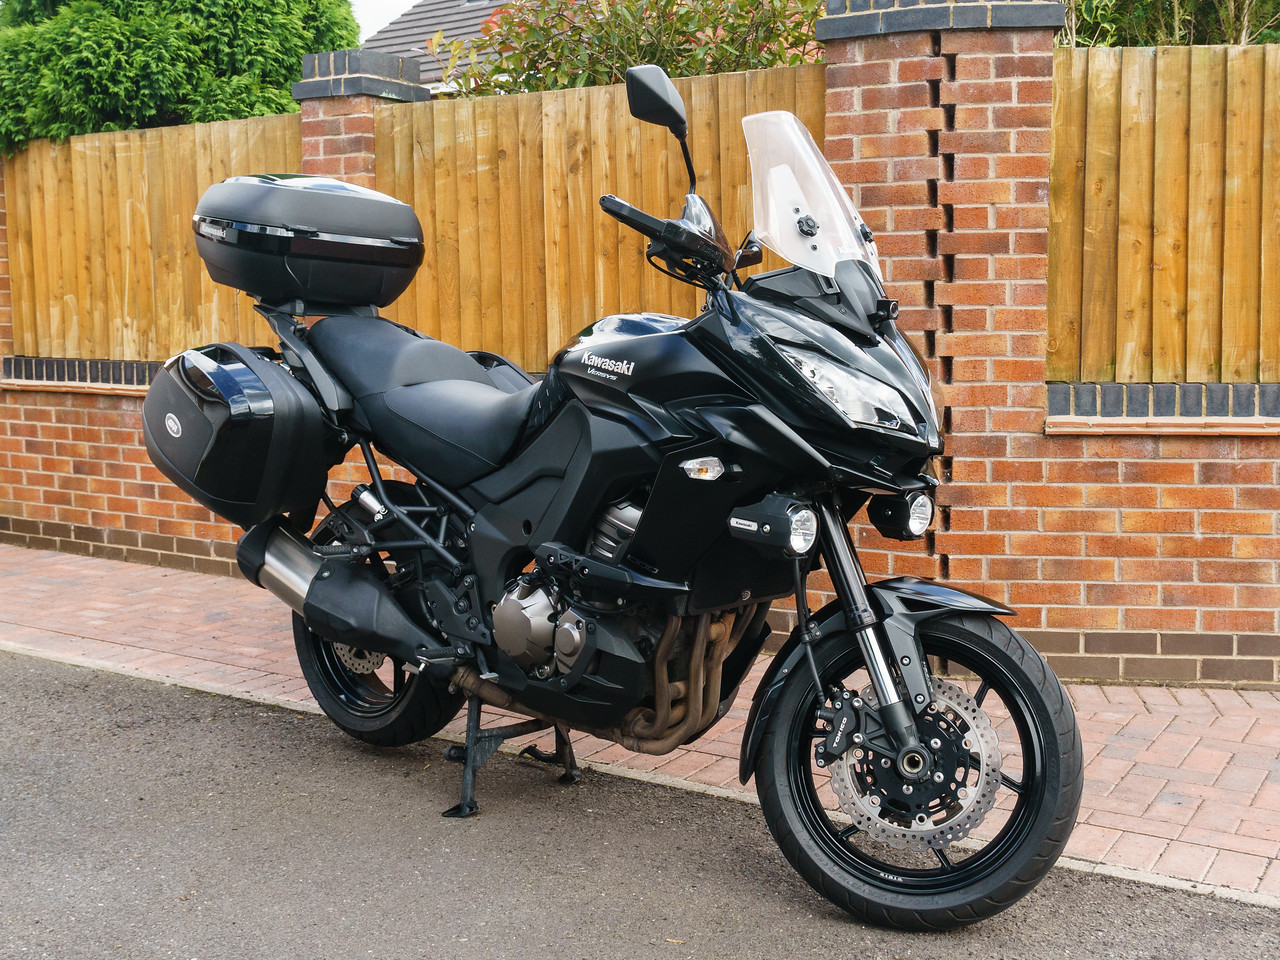 NOW SOLD - 2015 Versys 1000 GT for sale £7500